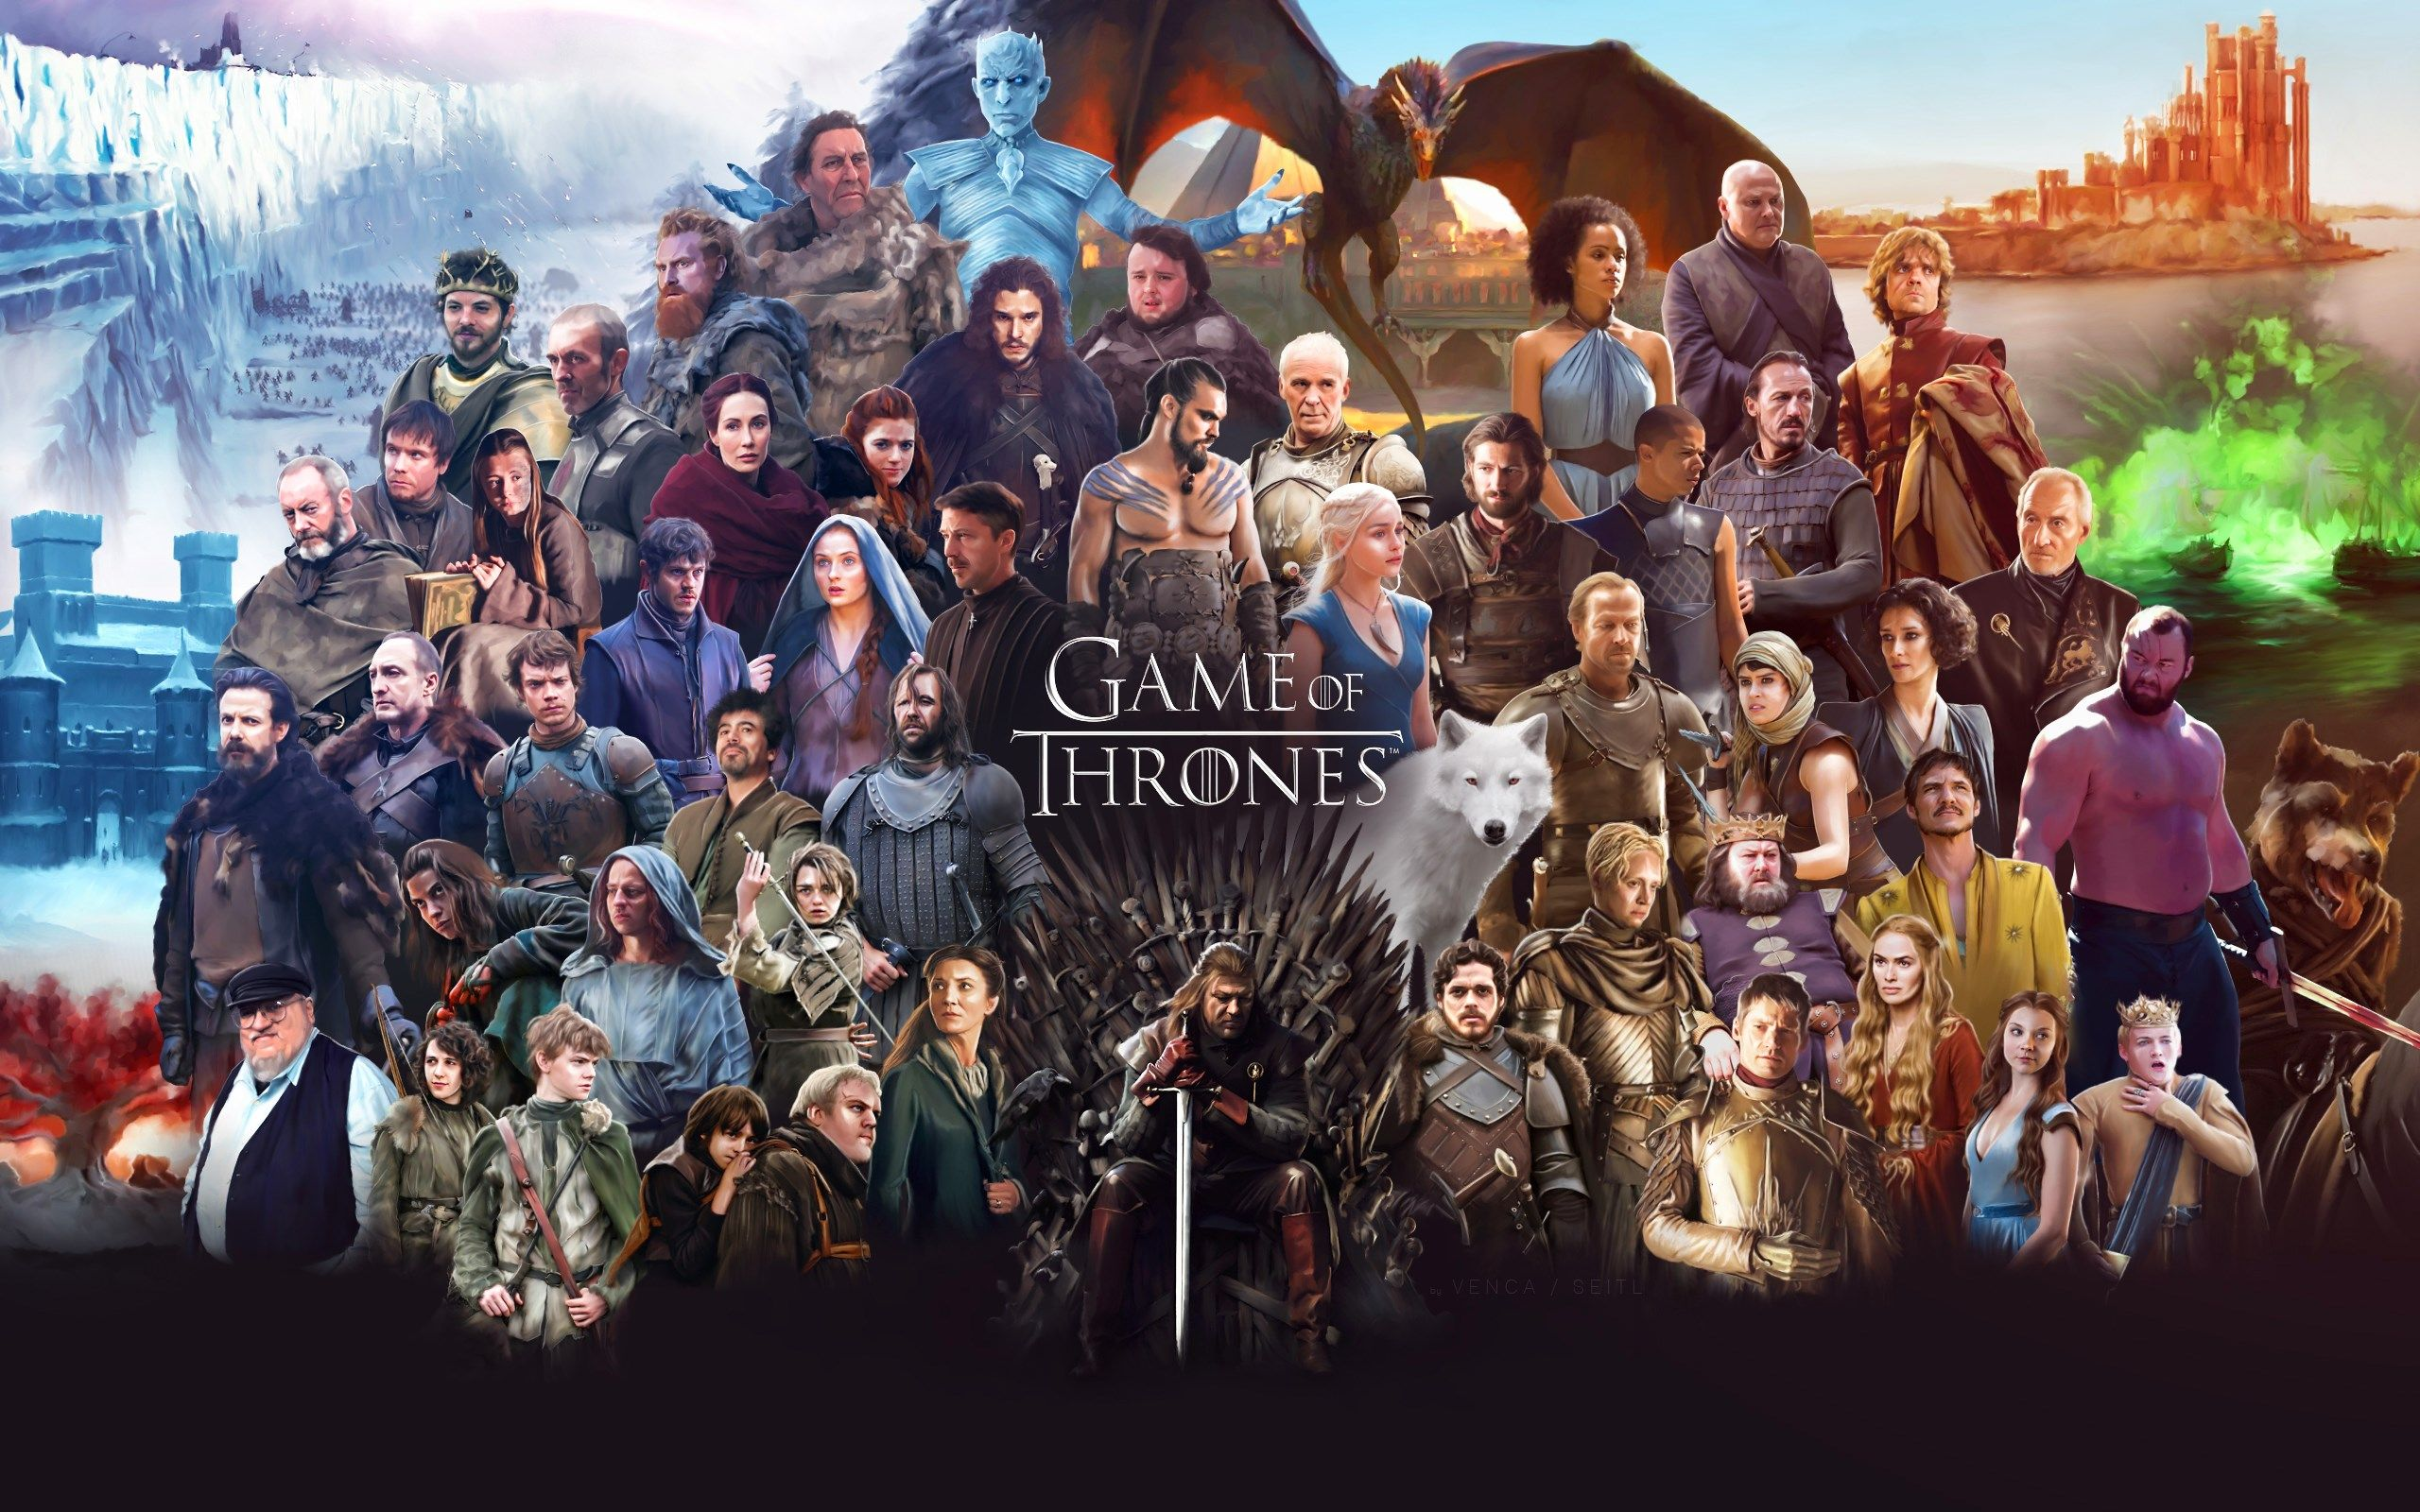 Free Download Pictures Of Game Of Thrones Poster Prints Free